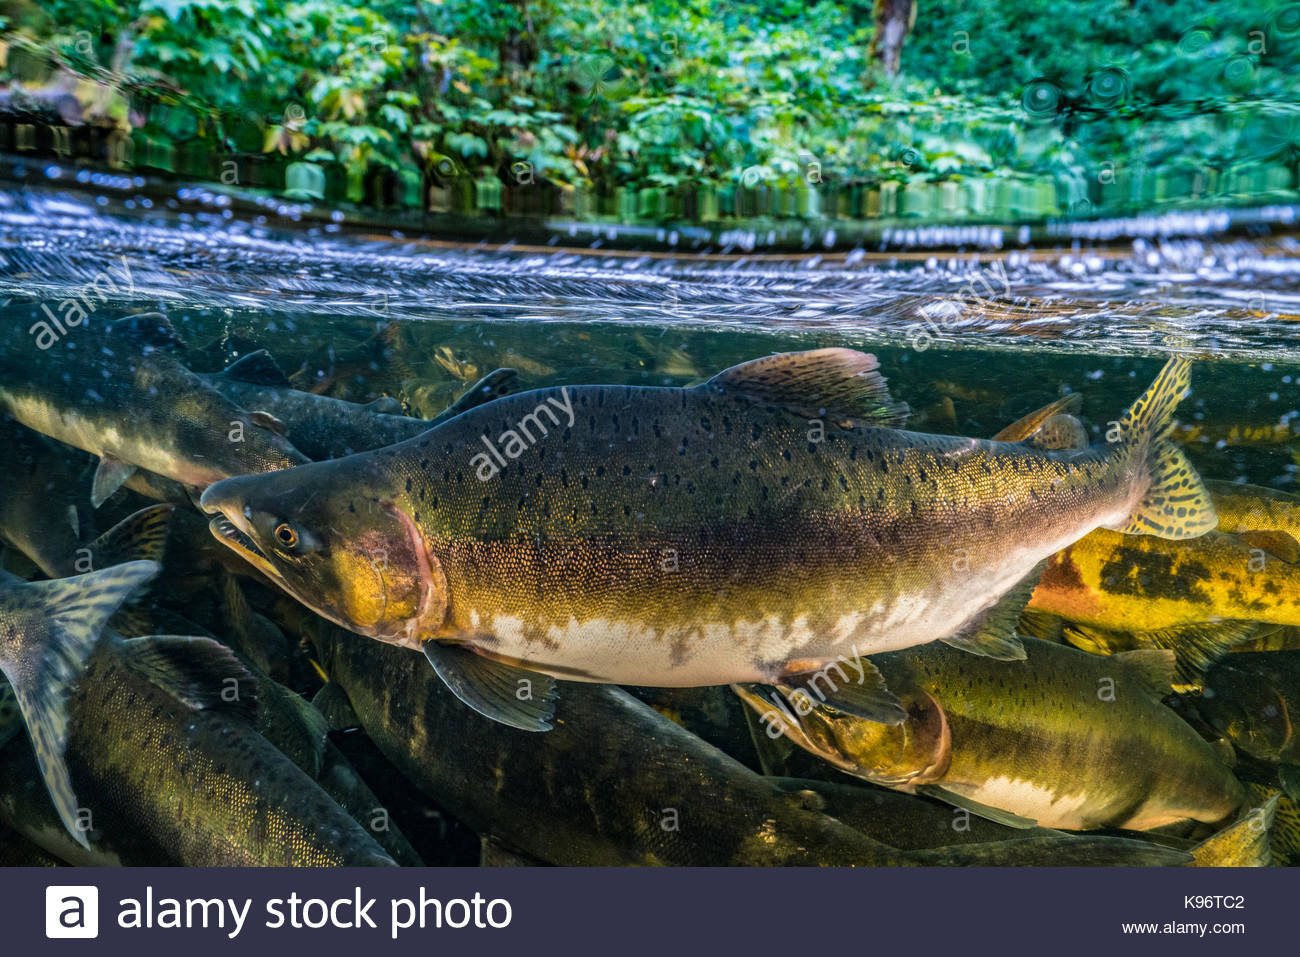 School of chinook salmon swim upstream to compete for spawning ground. - Stock Image